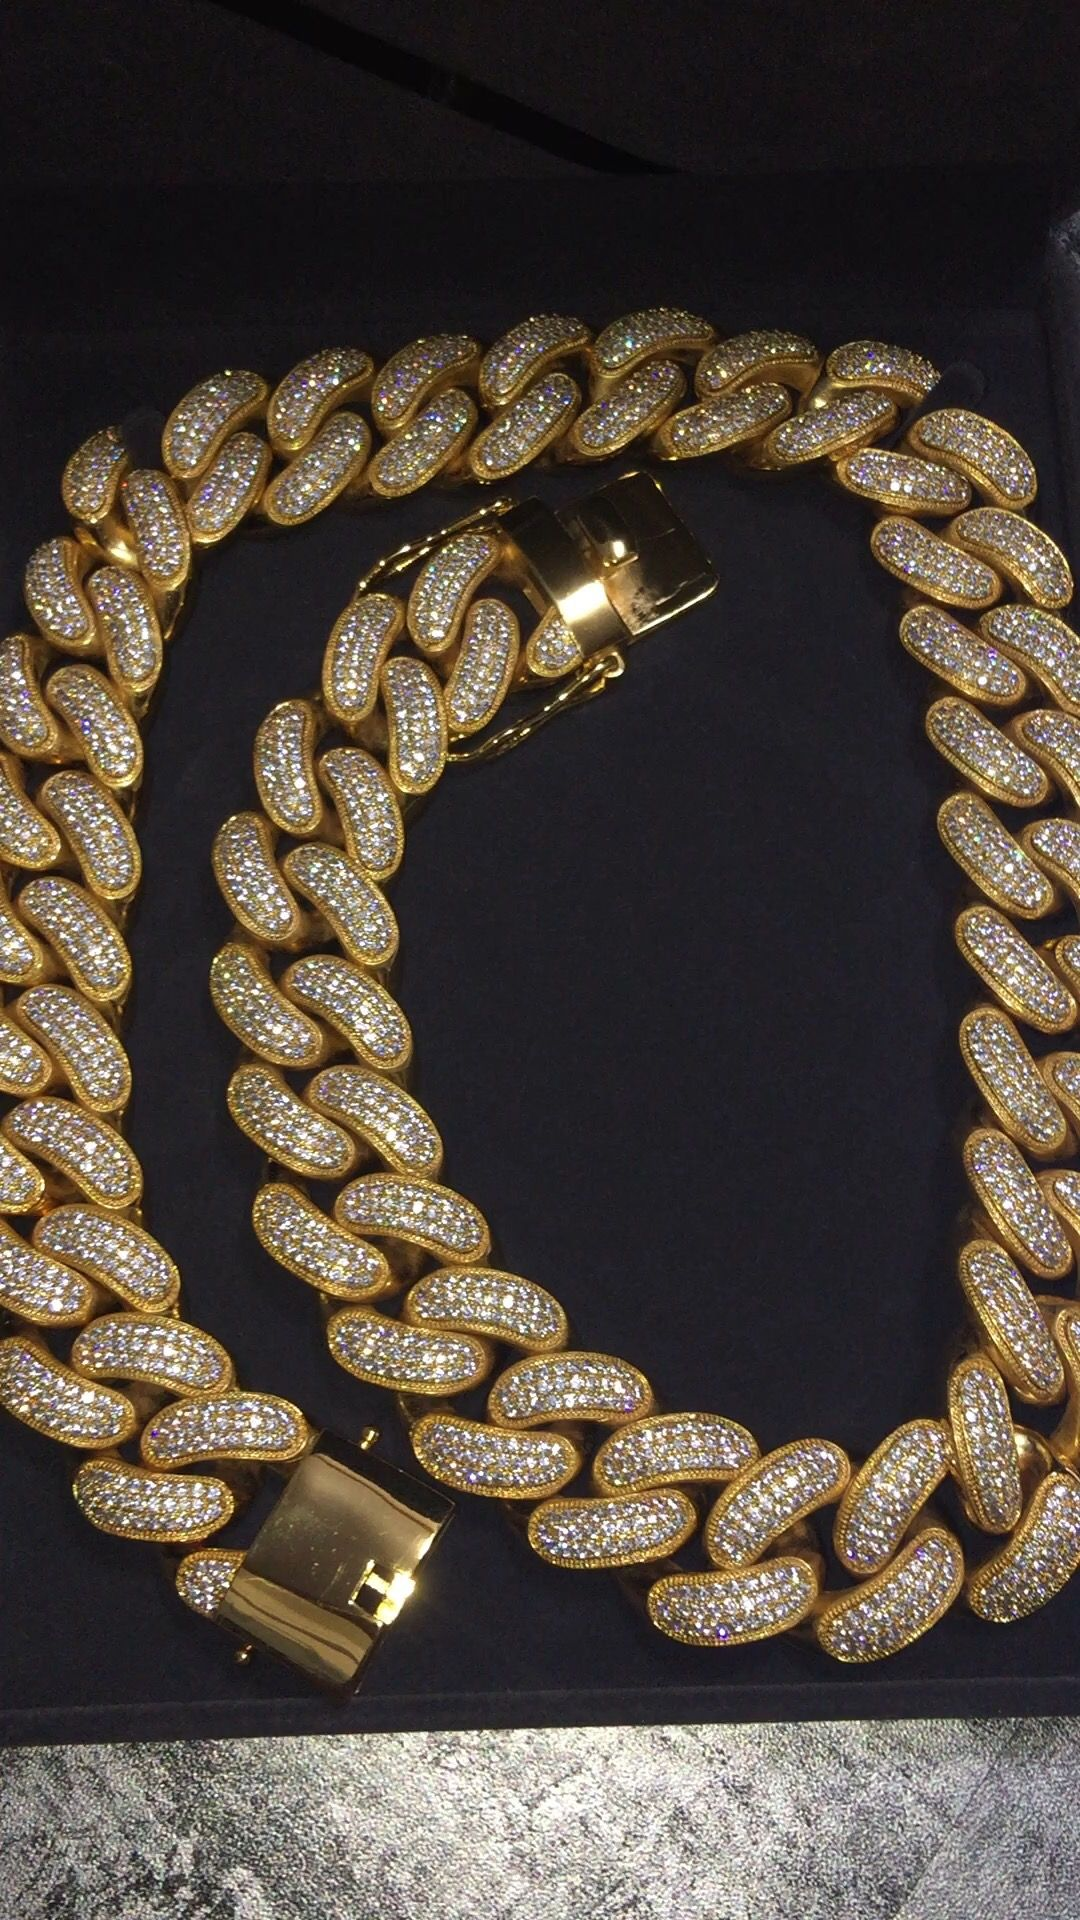 Miami Cuban Link Chain 30mm 30 Inches Shop All Jesus Piece